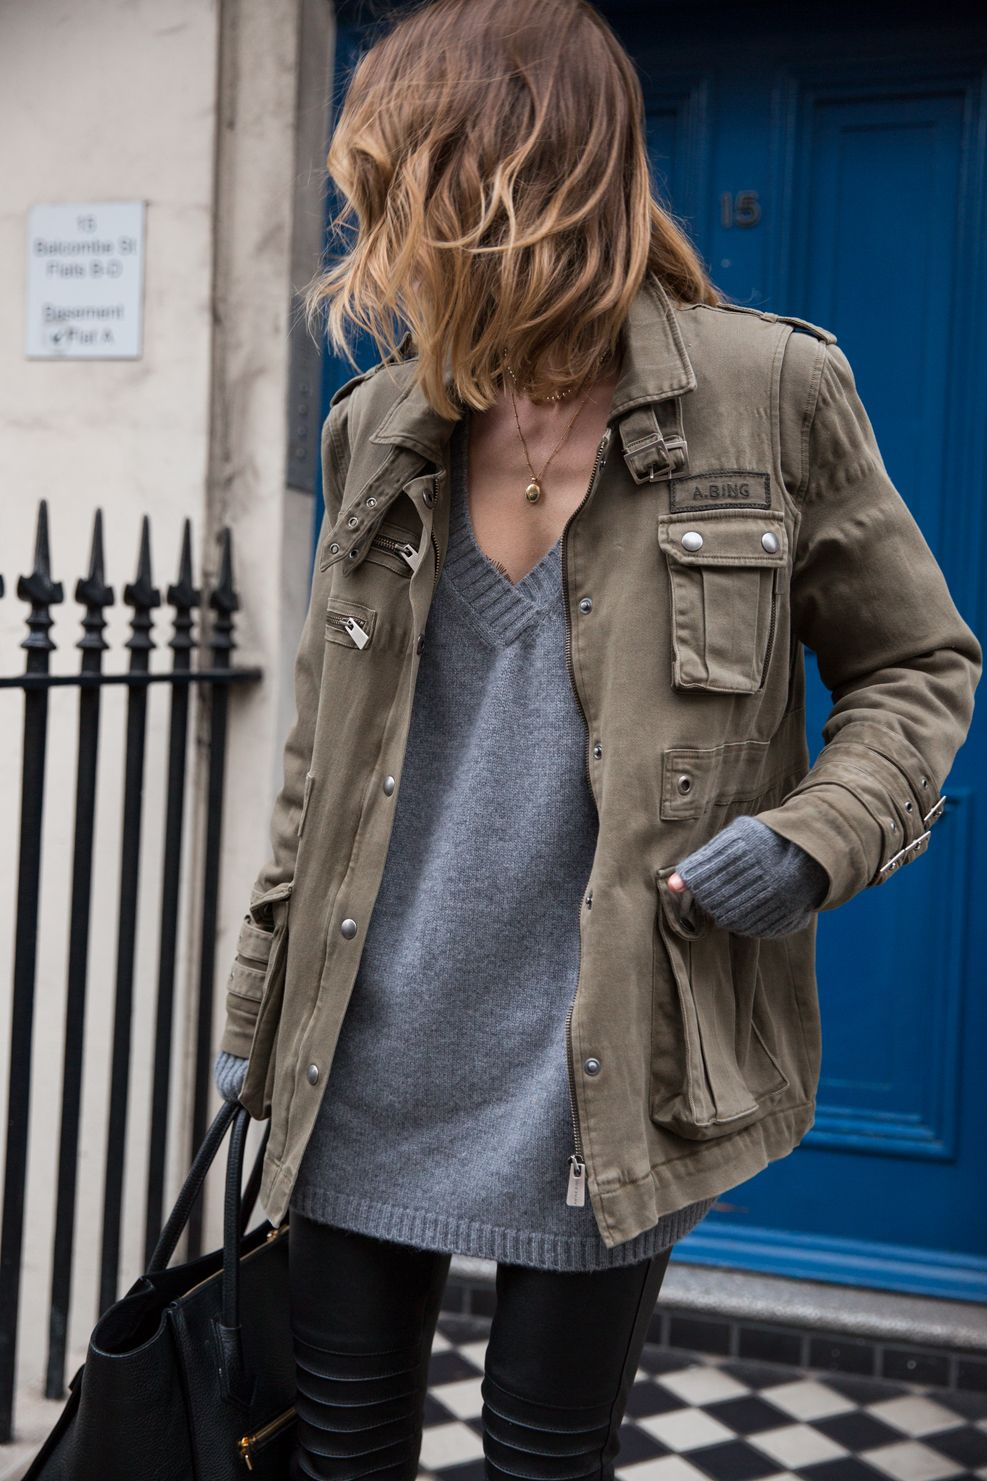 631348389af7e ANINEBING daily look | @aninebing | s t y l e | Fashion, Military ...